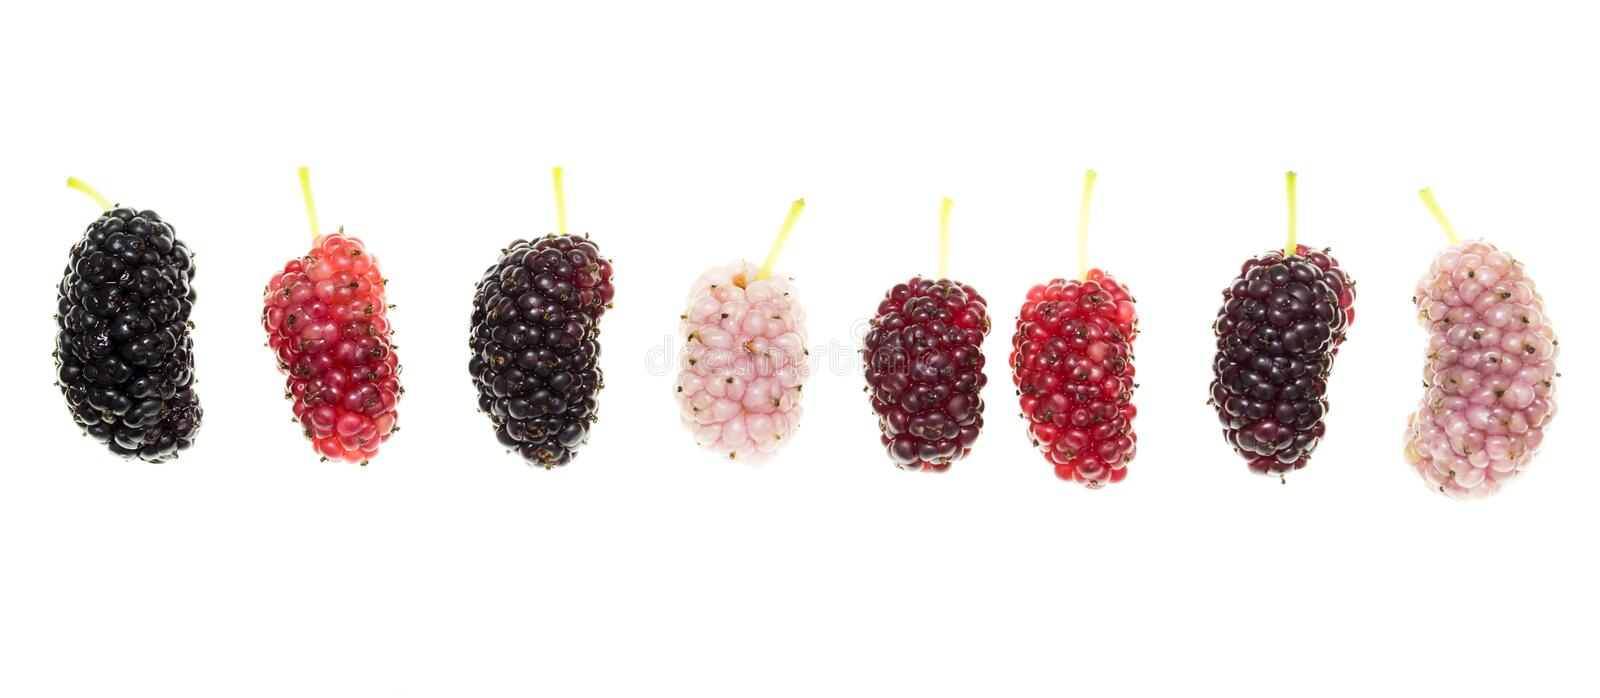 Mulberry berry on a white background royalty free stock images